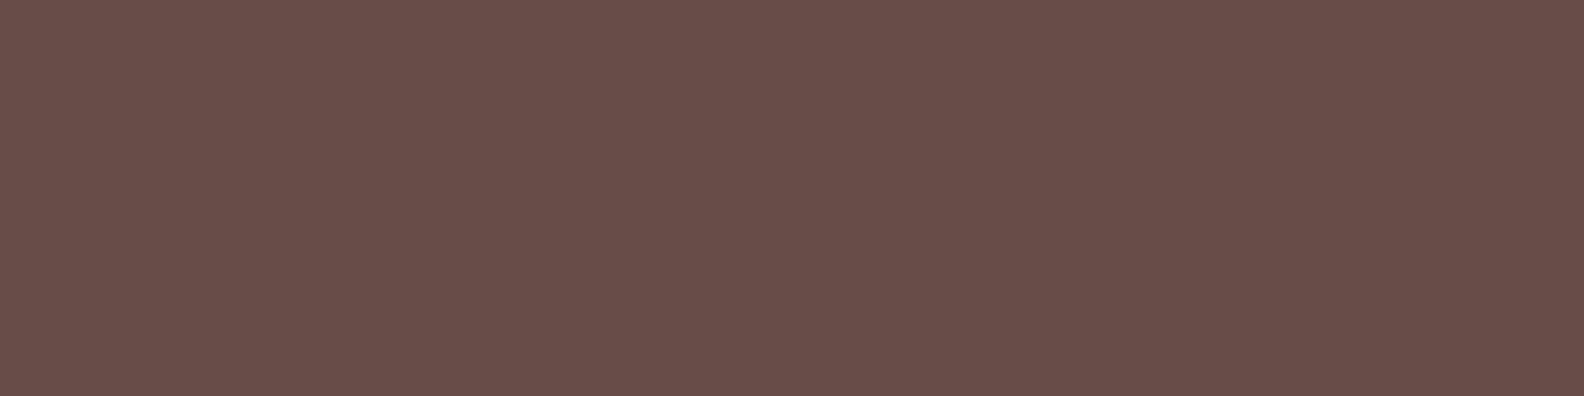 1584x396 Medium Taupe Solid Color Background